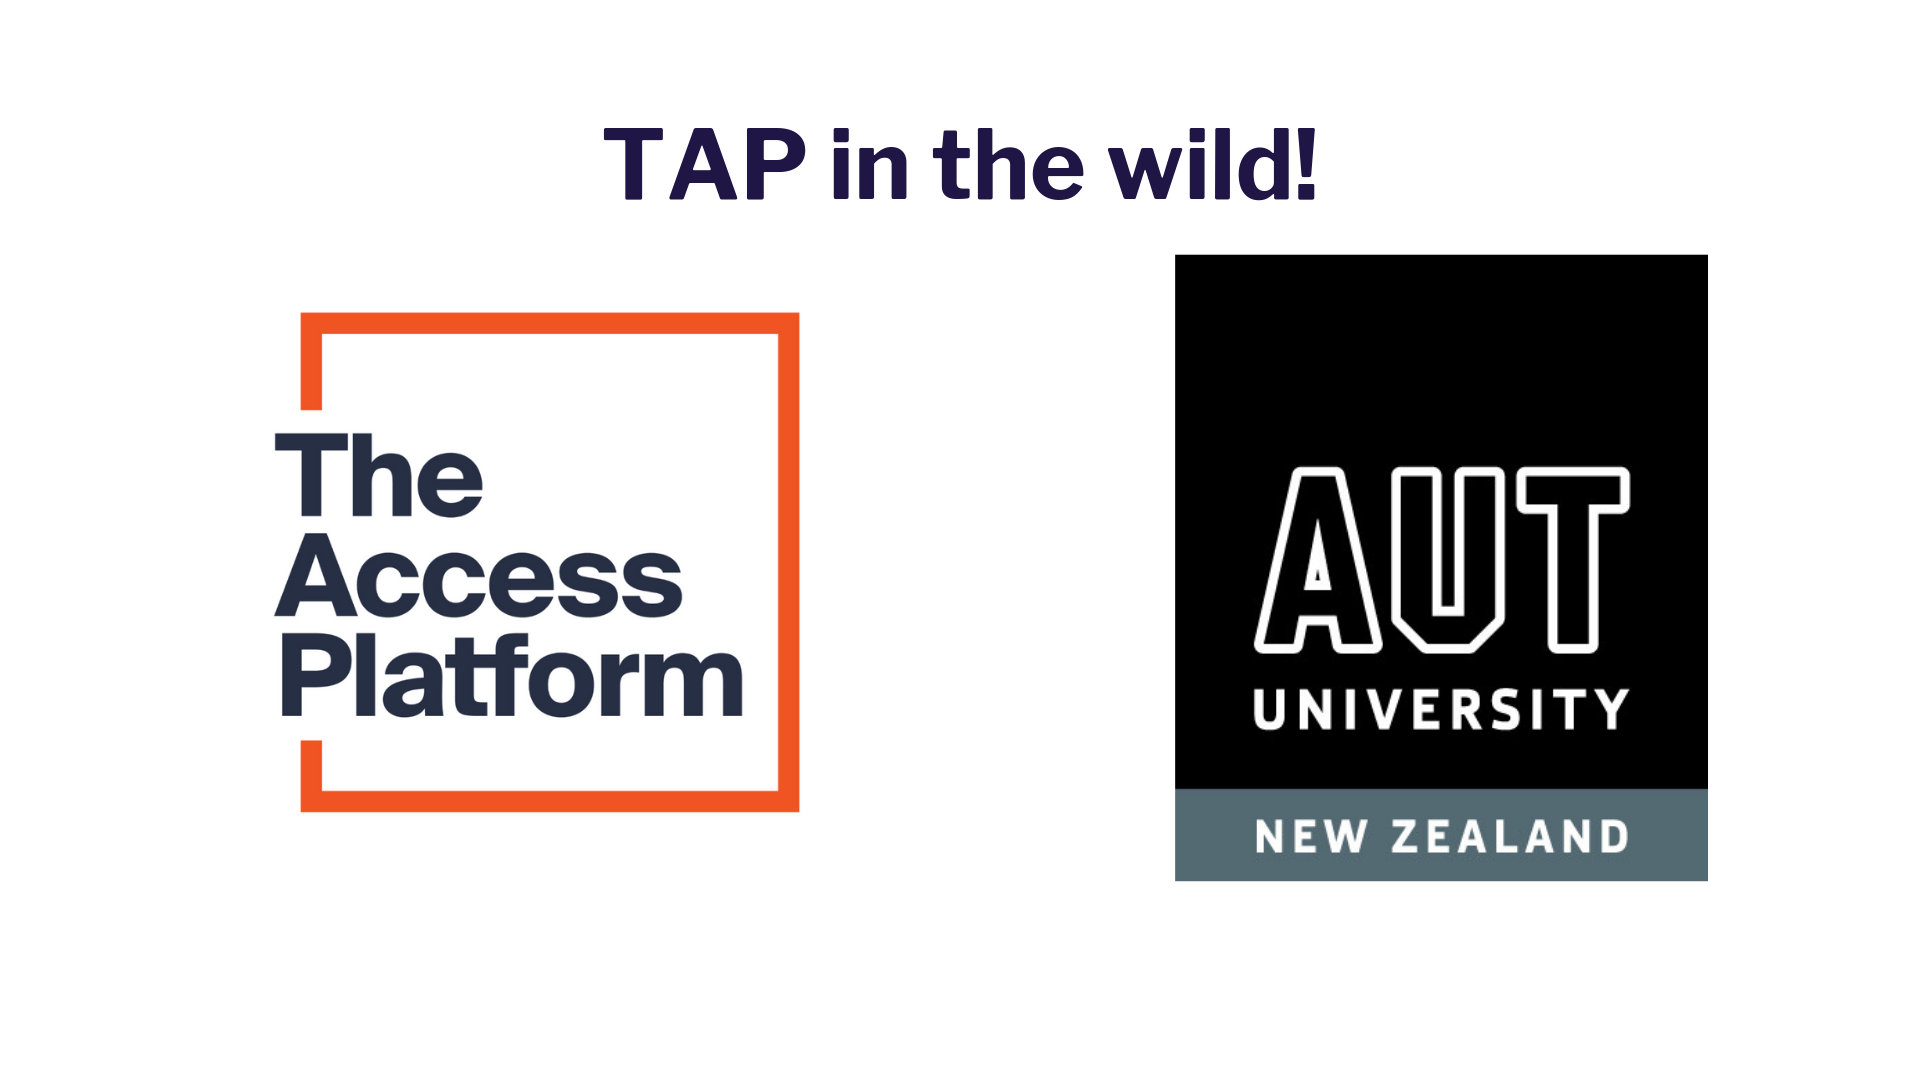 TAP in the wild: Auckland University of Technology